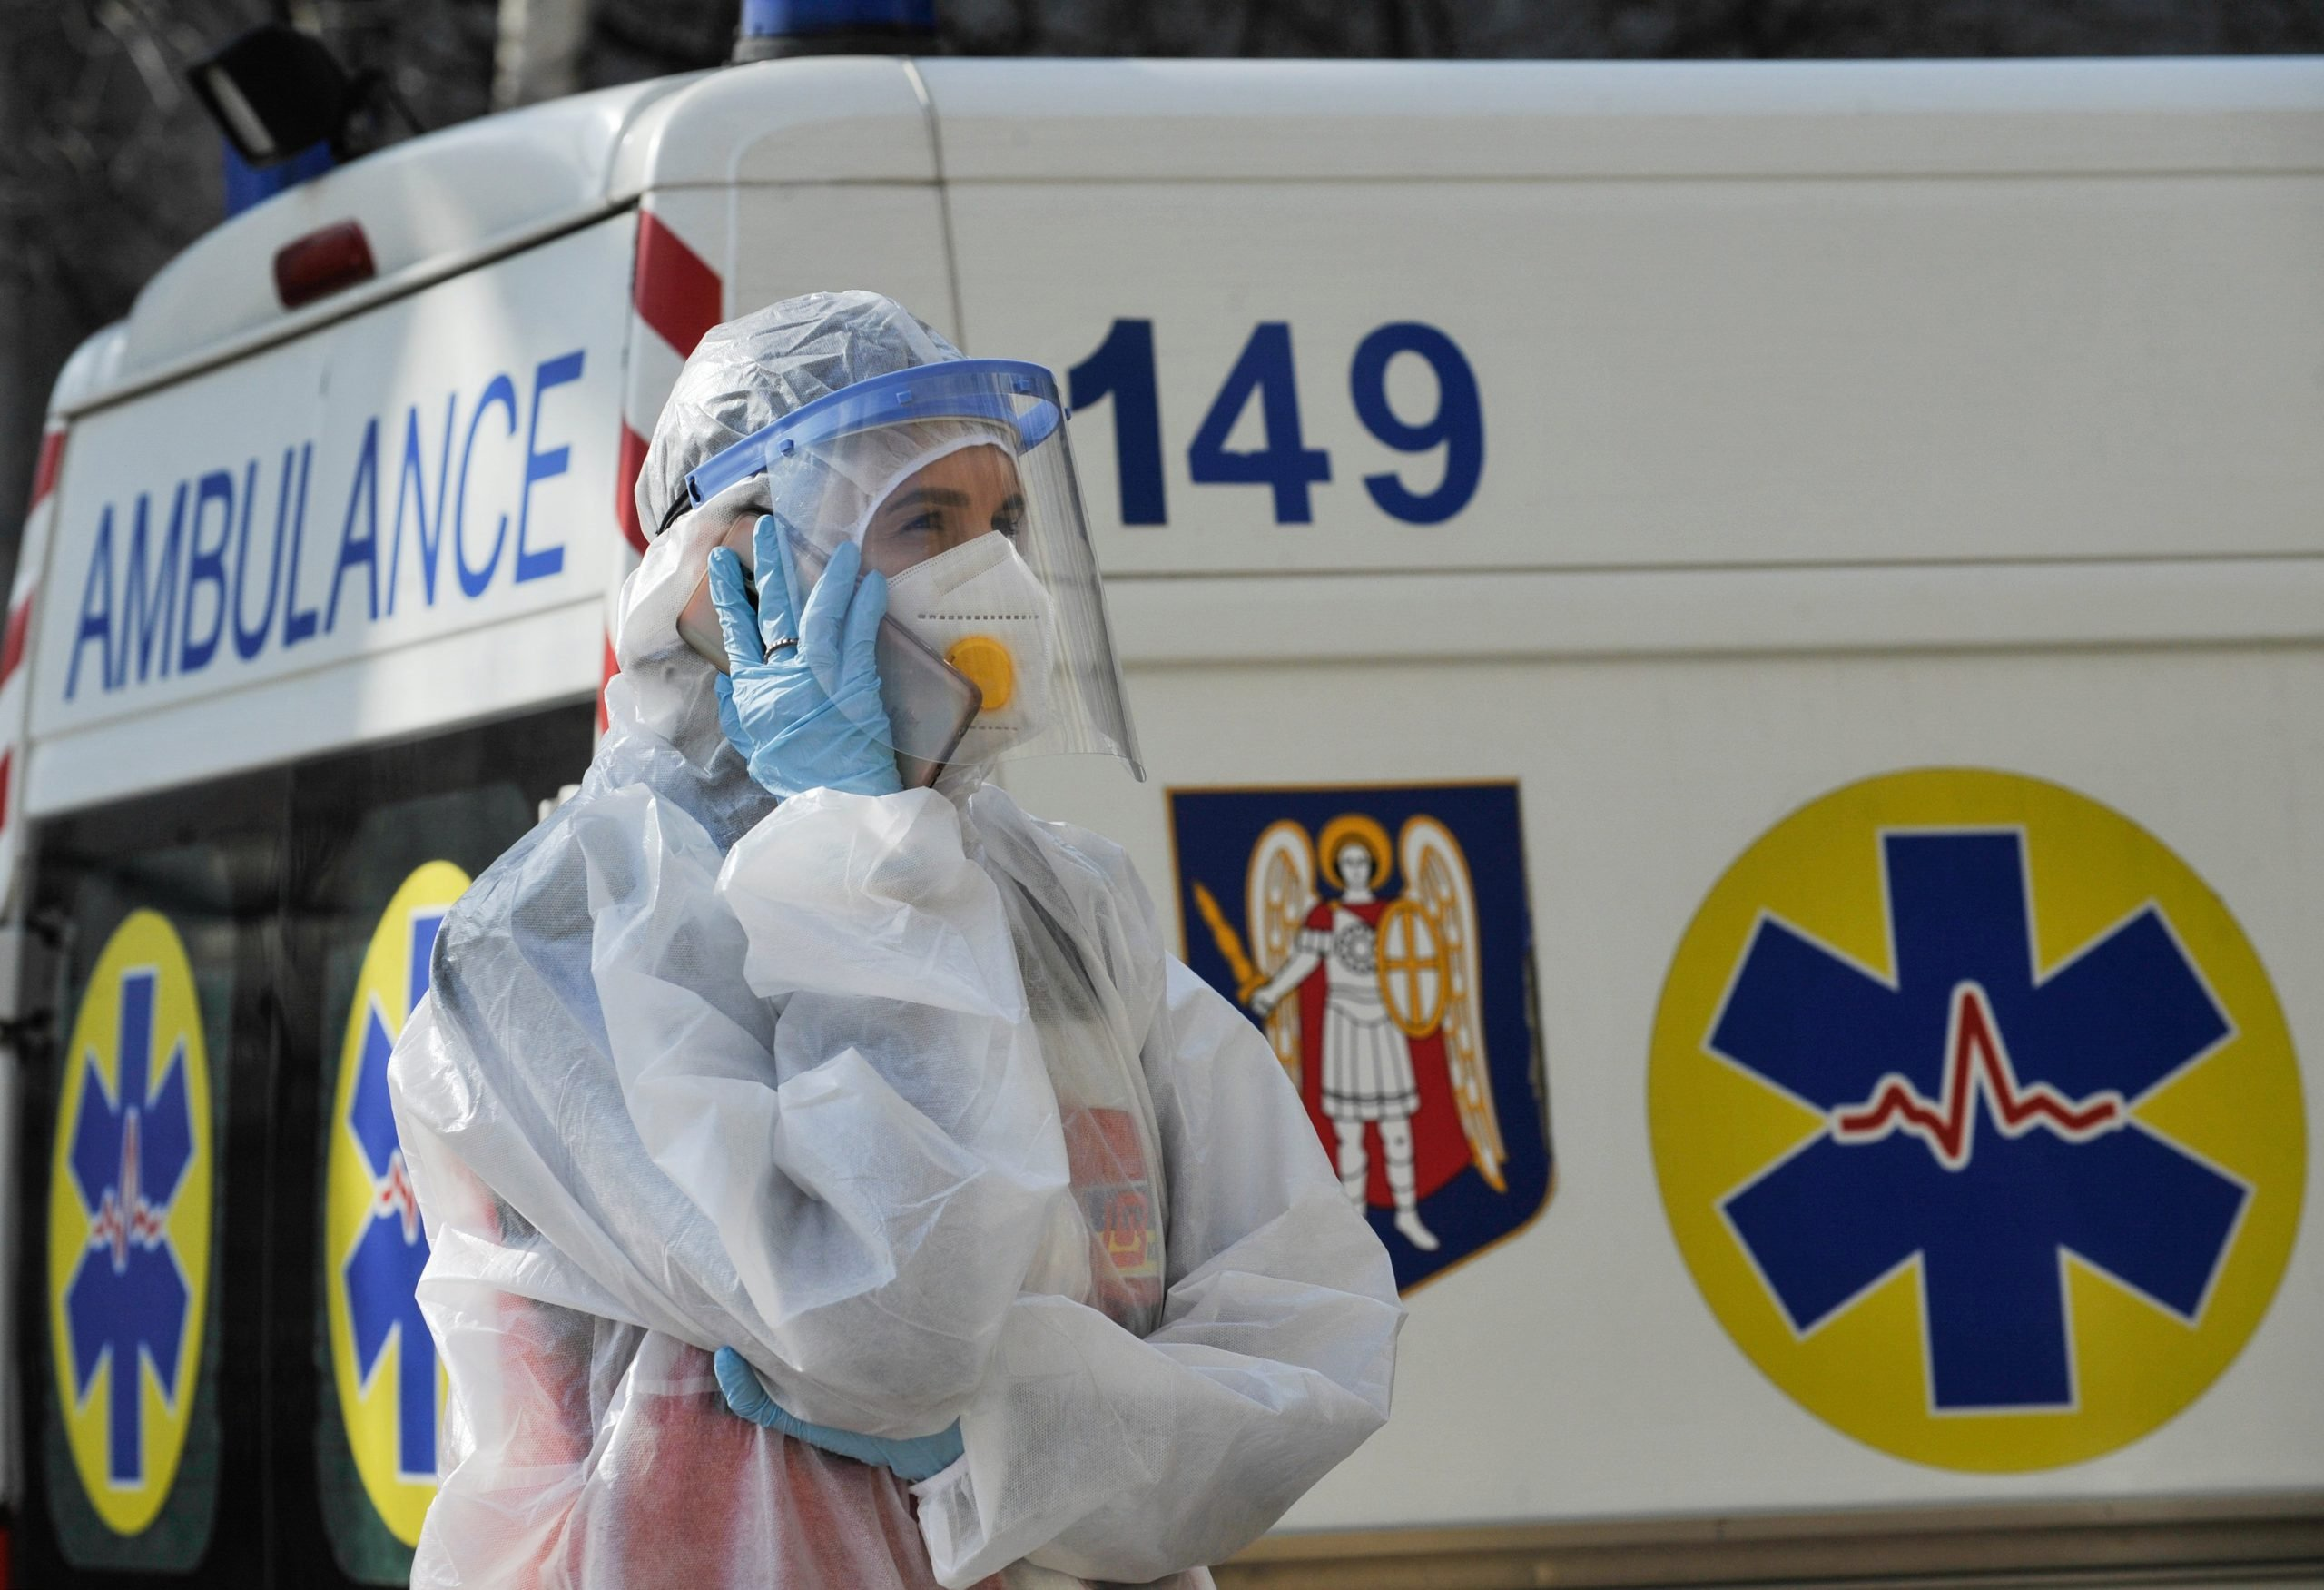 More than 17 000 new cases of COVID-19 detected per day in Ukraine